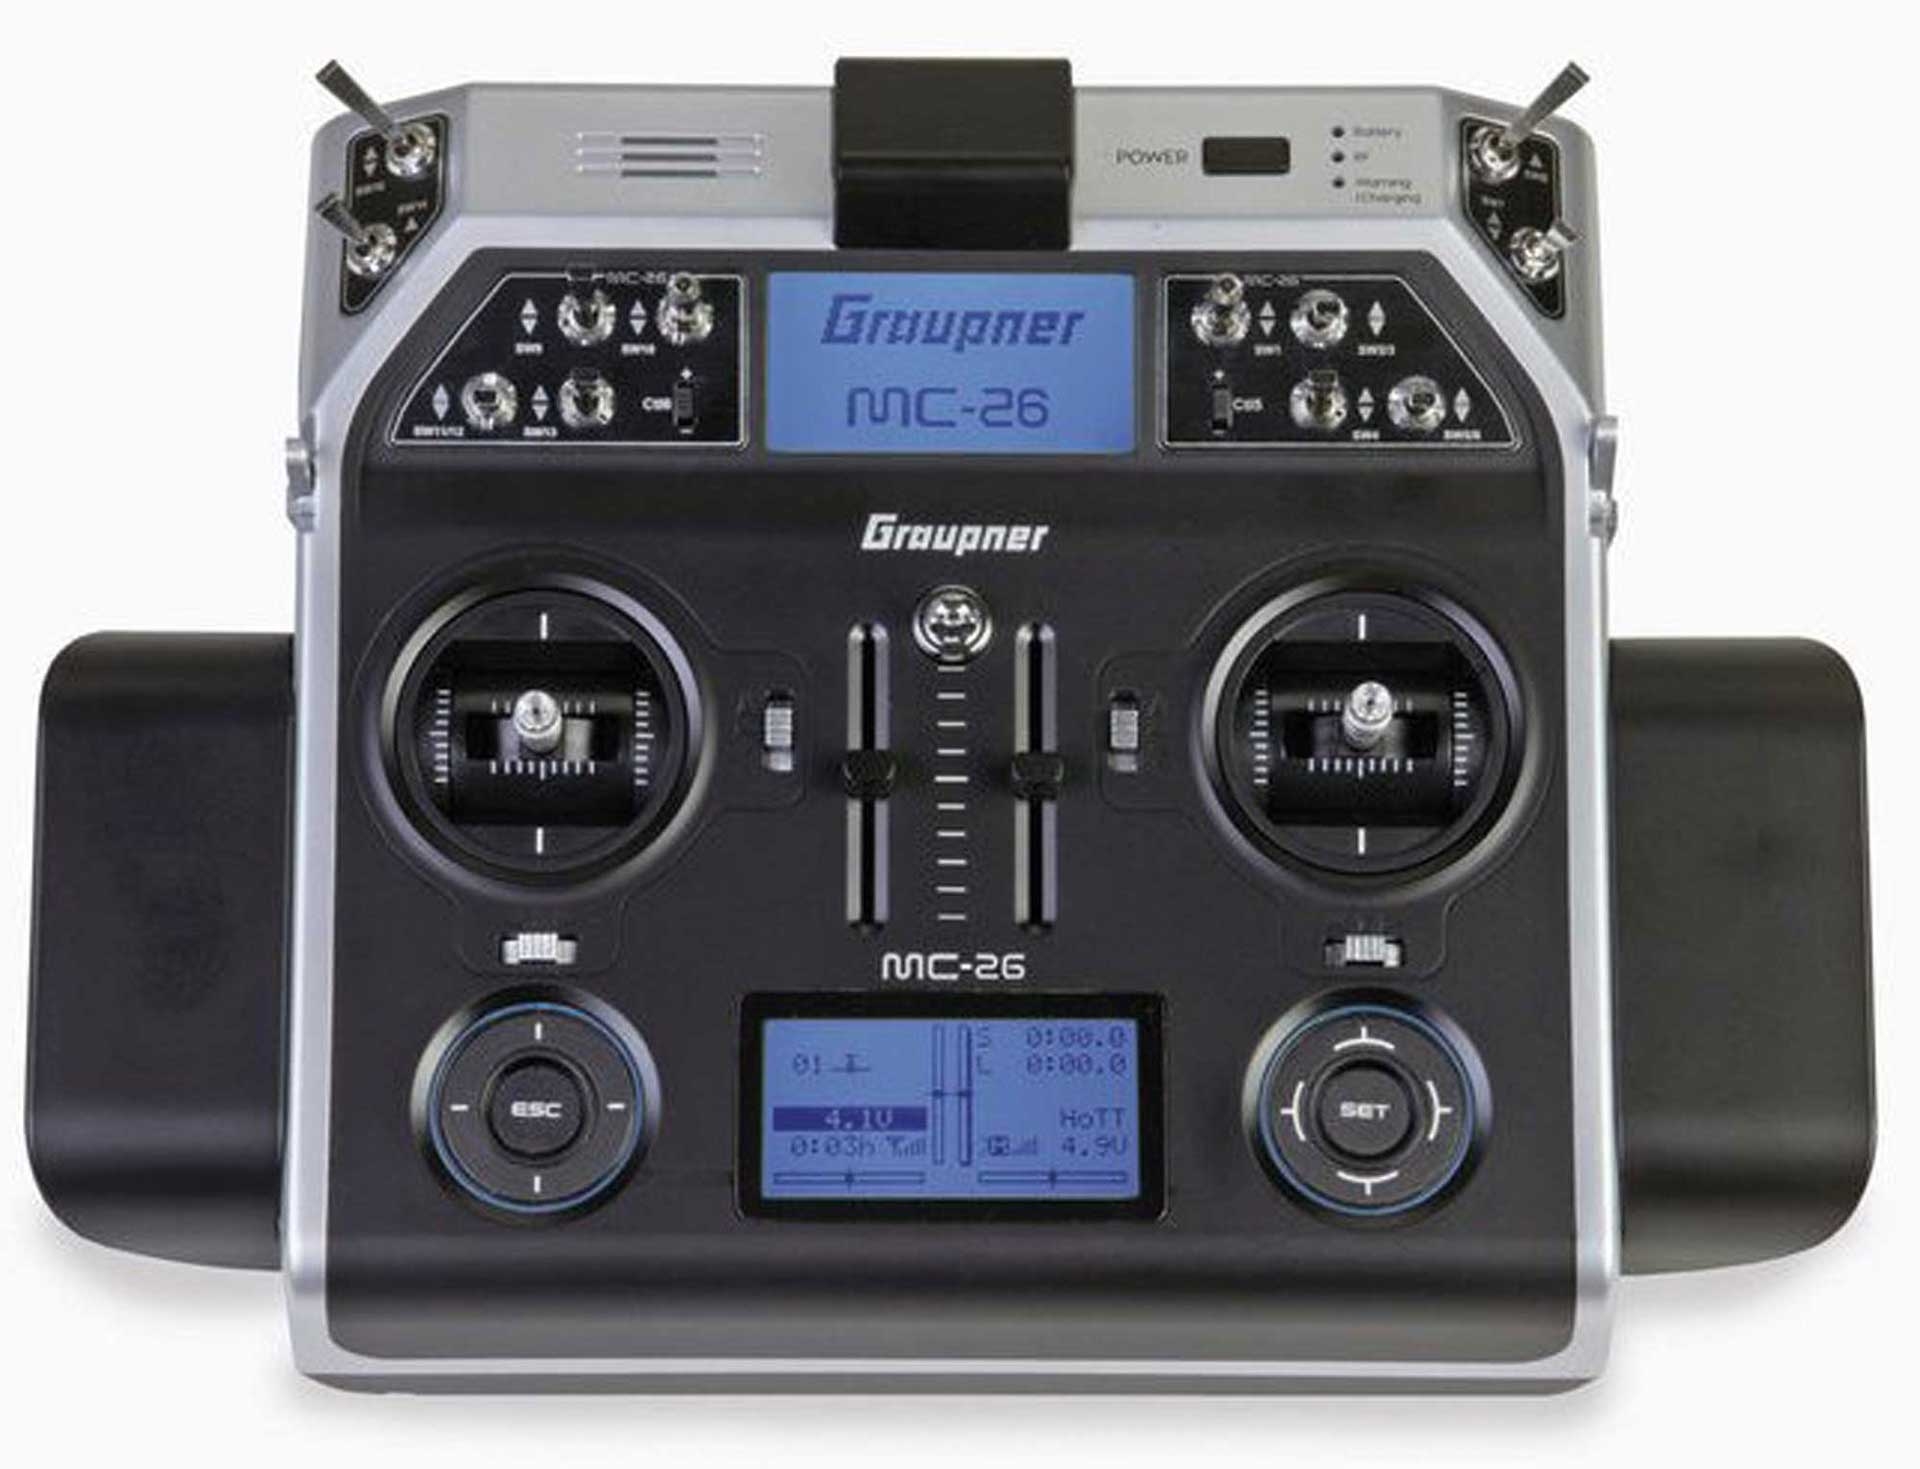 GRAUPNER MC-26 HOTT TRANSMITTER ONLY